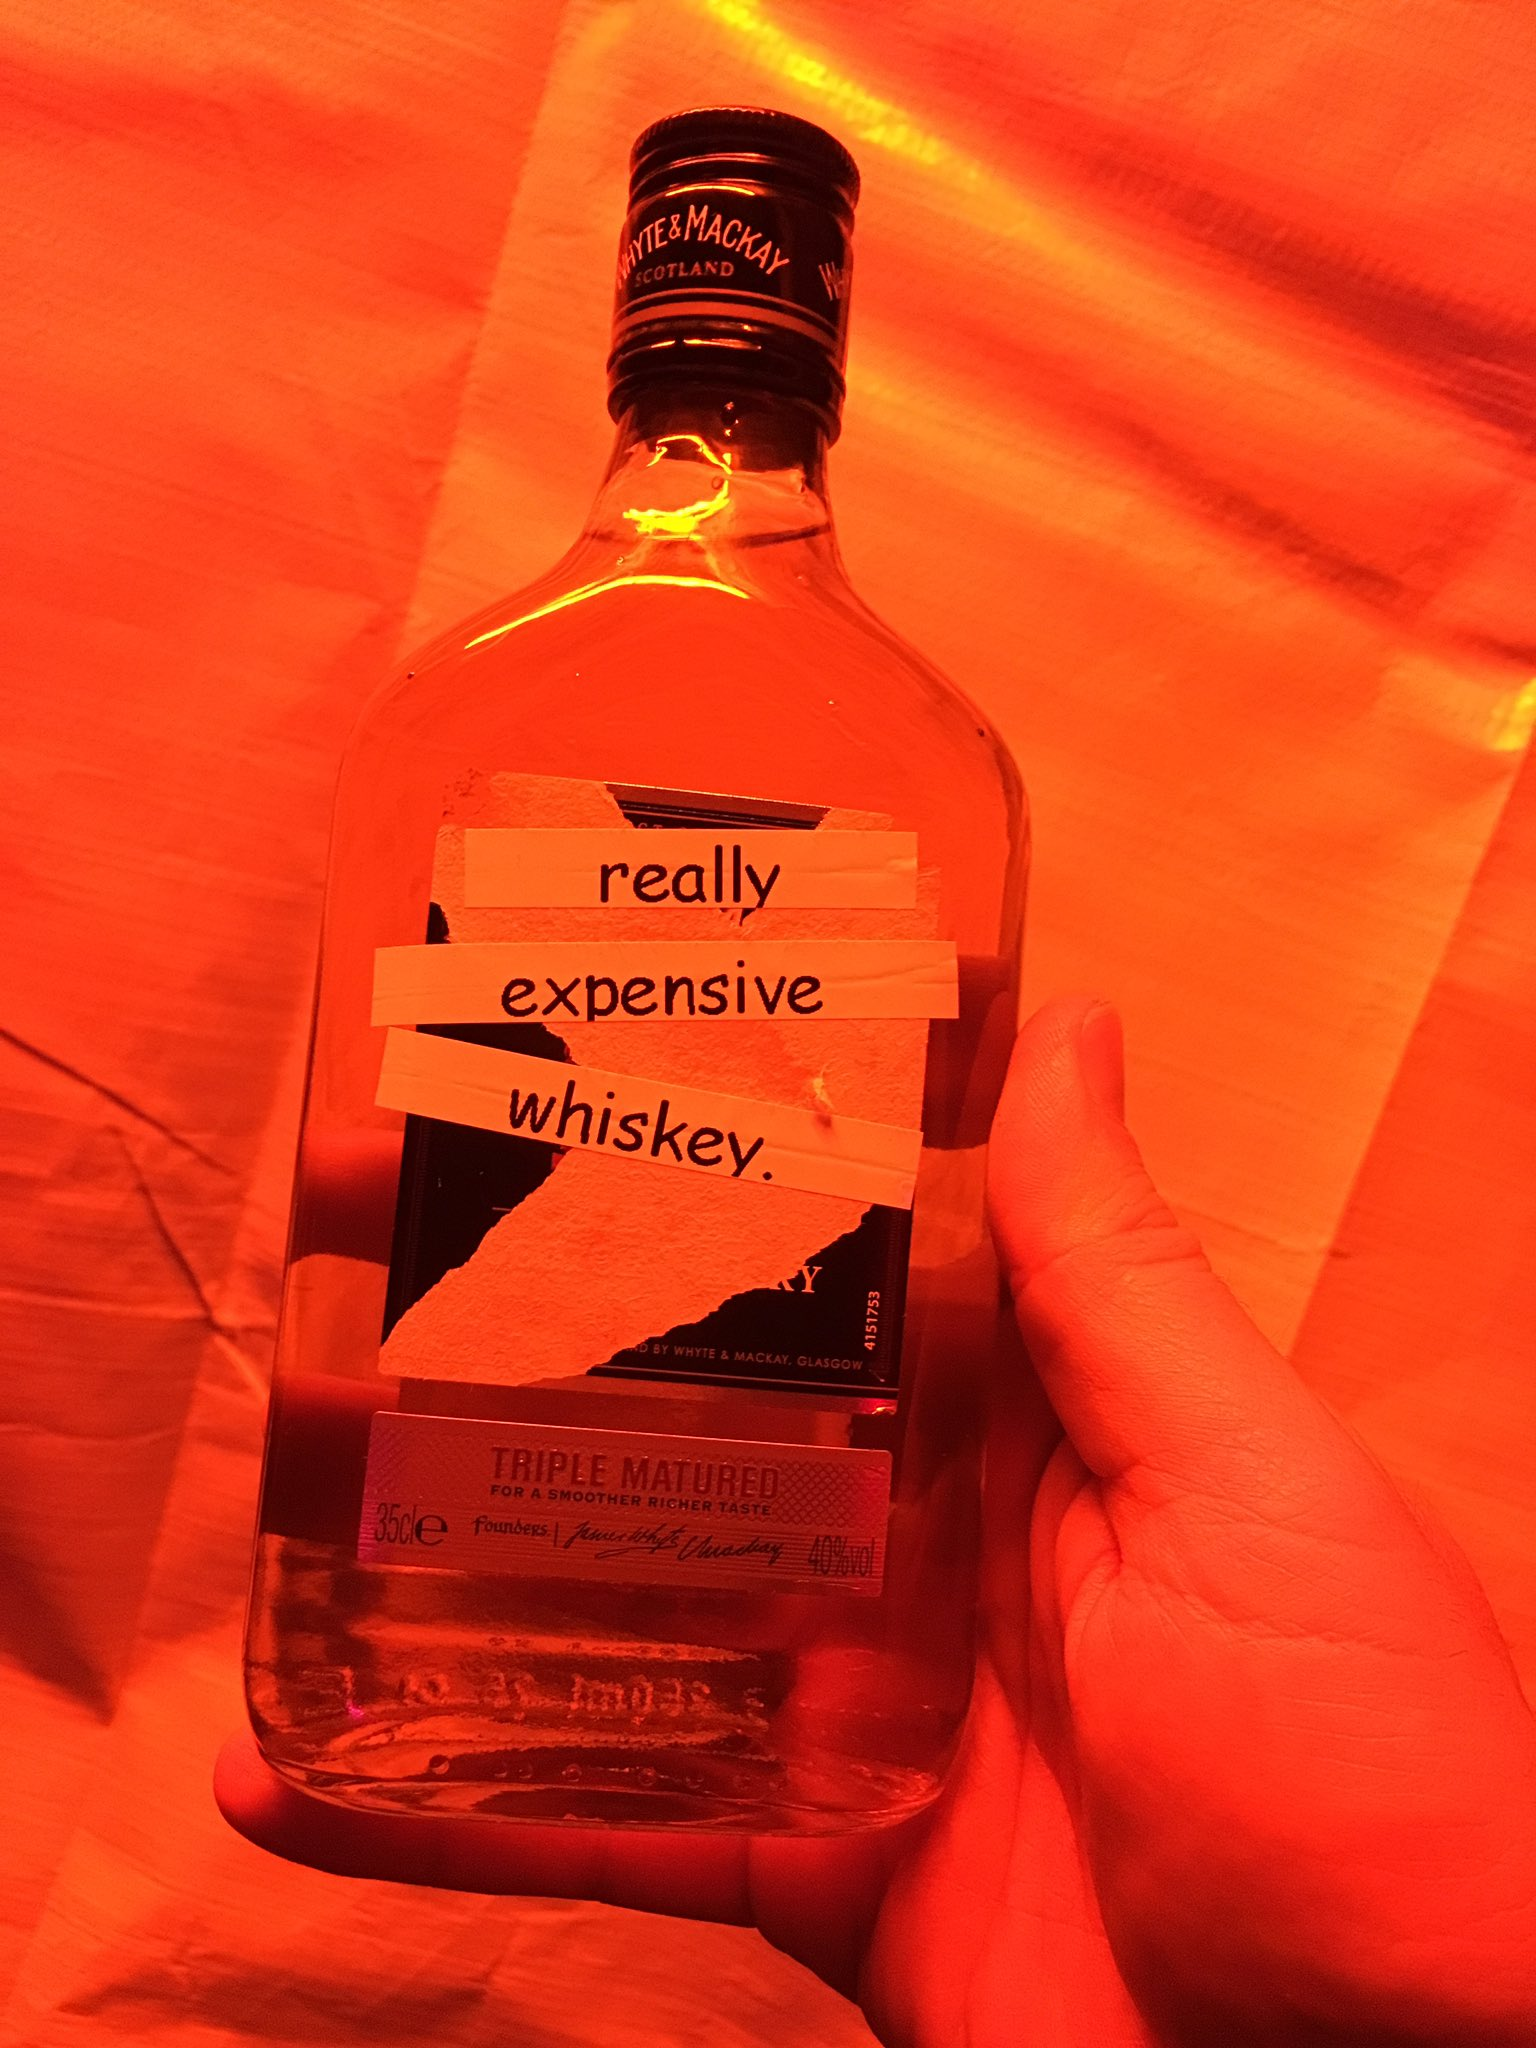 Should I drink this? #emfcamp https://t.co/Nqtw3KzVvg